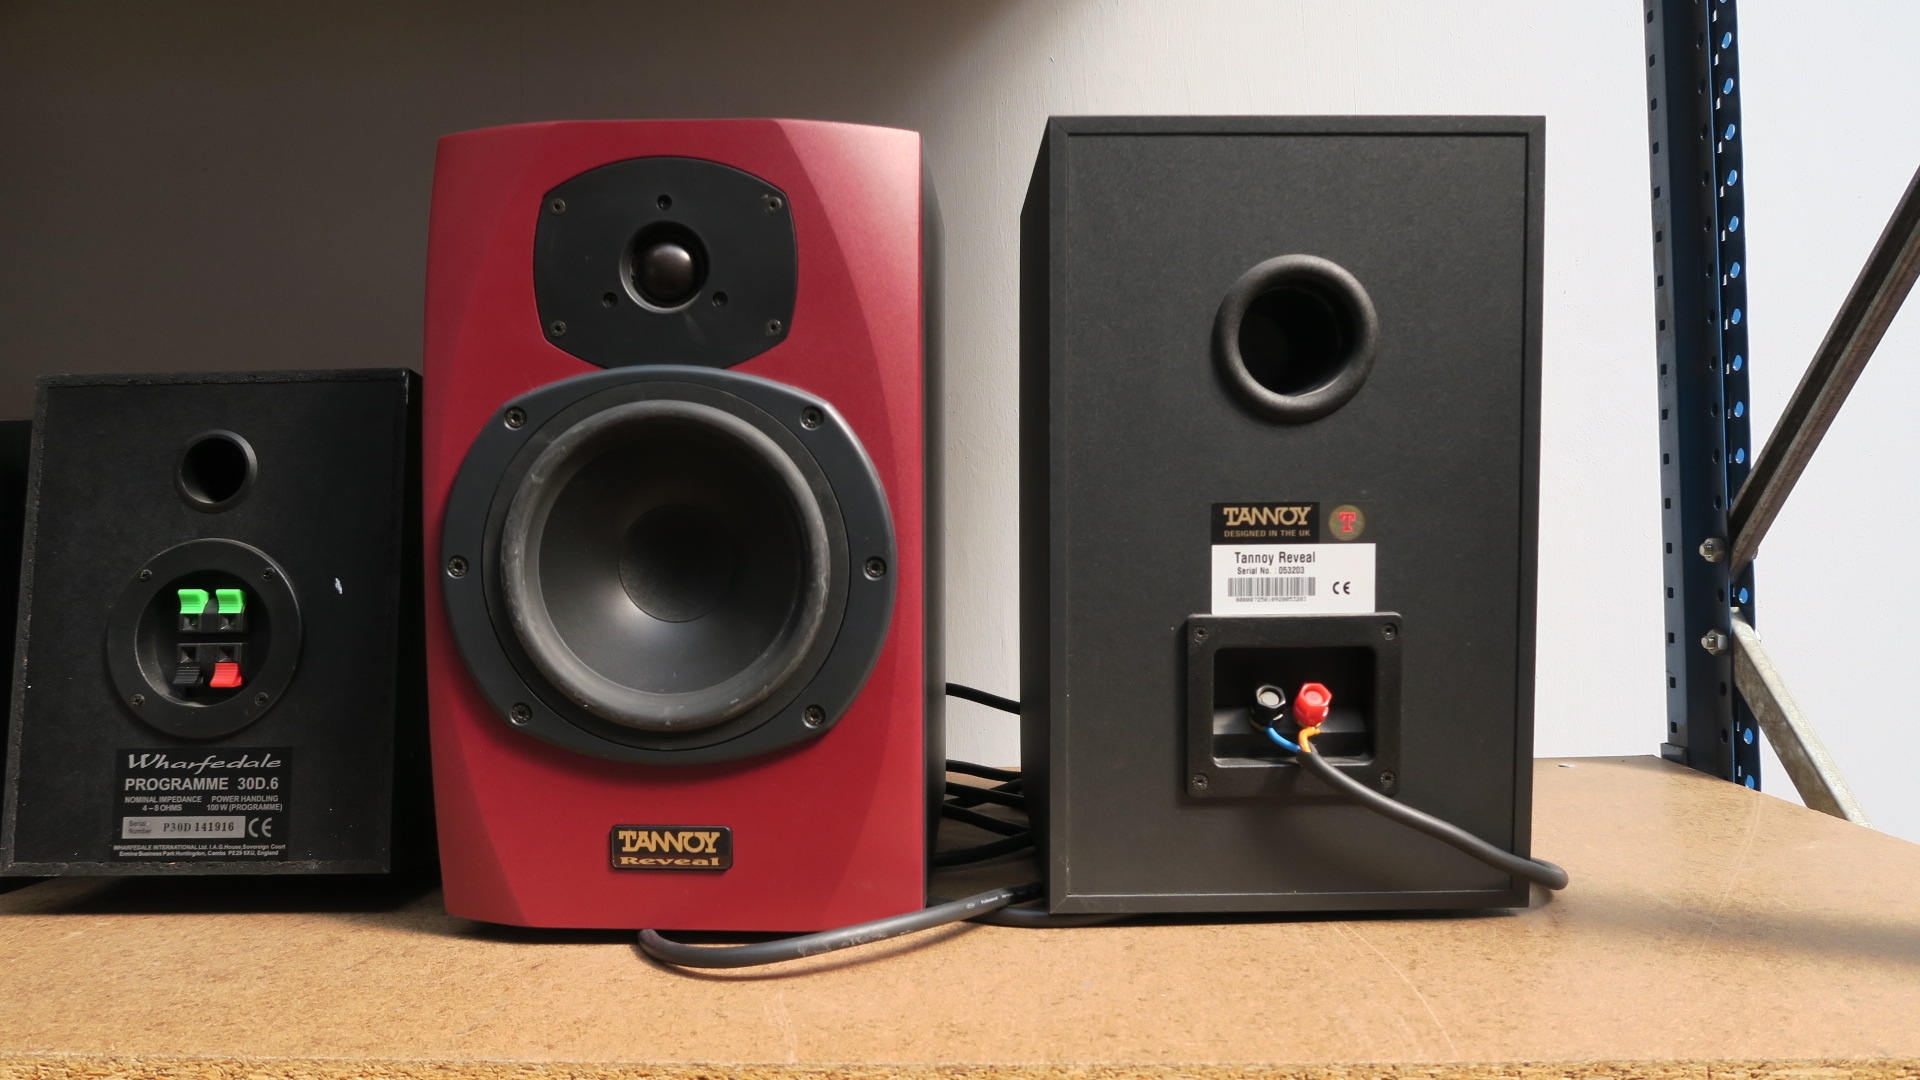 Lot 174 - Three pairs of bookshelf speakers - JVC model SP, Wharfdale 30D6 and Tannoy Reveal in red (with